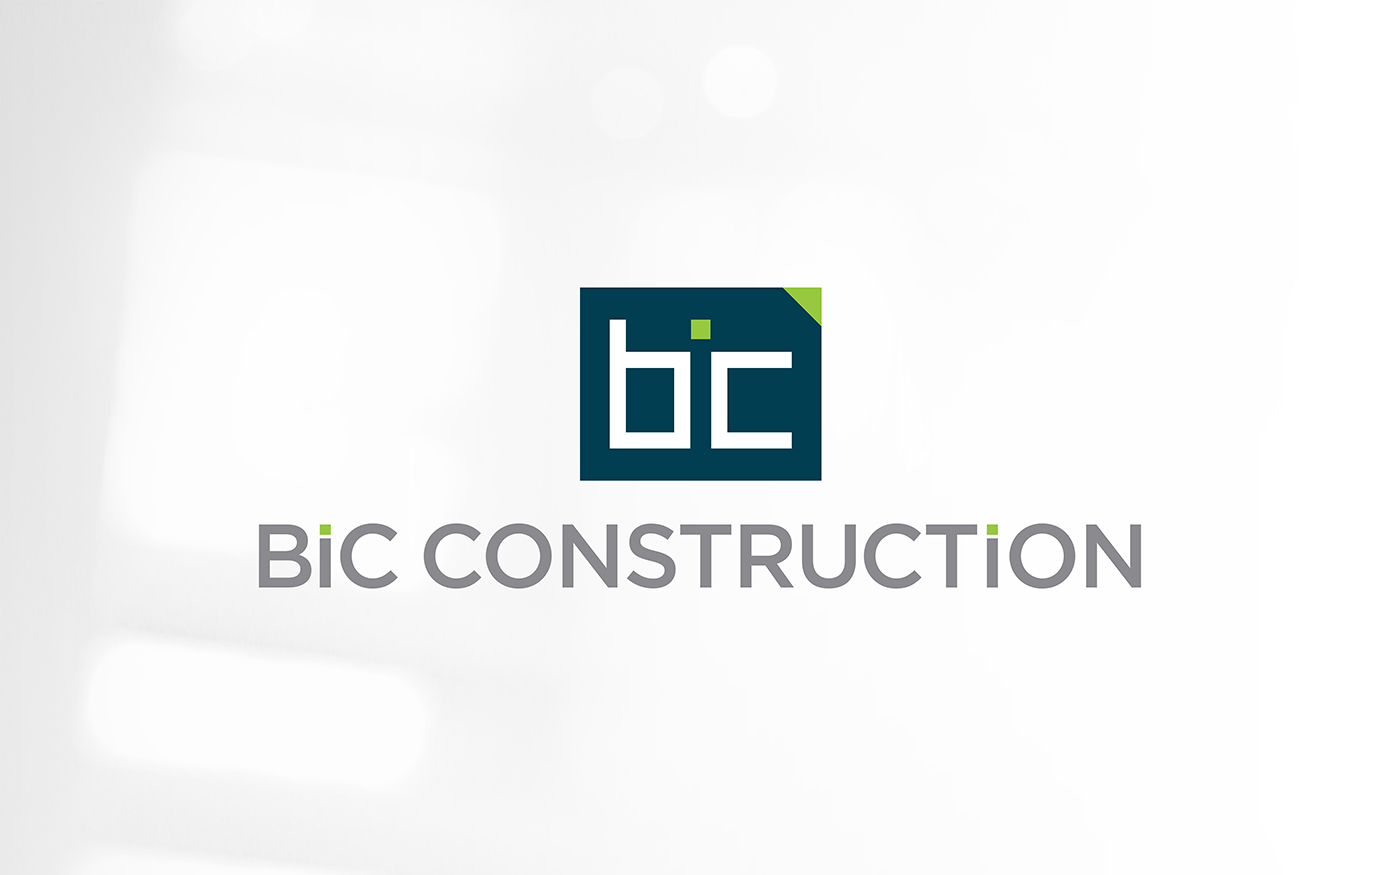 BIC Construction identity - Stack1 logo lockup